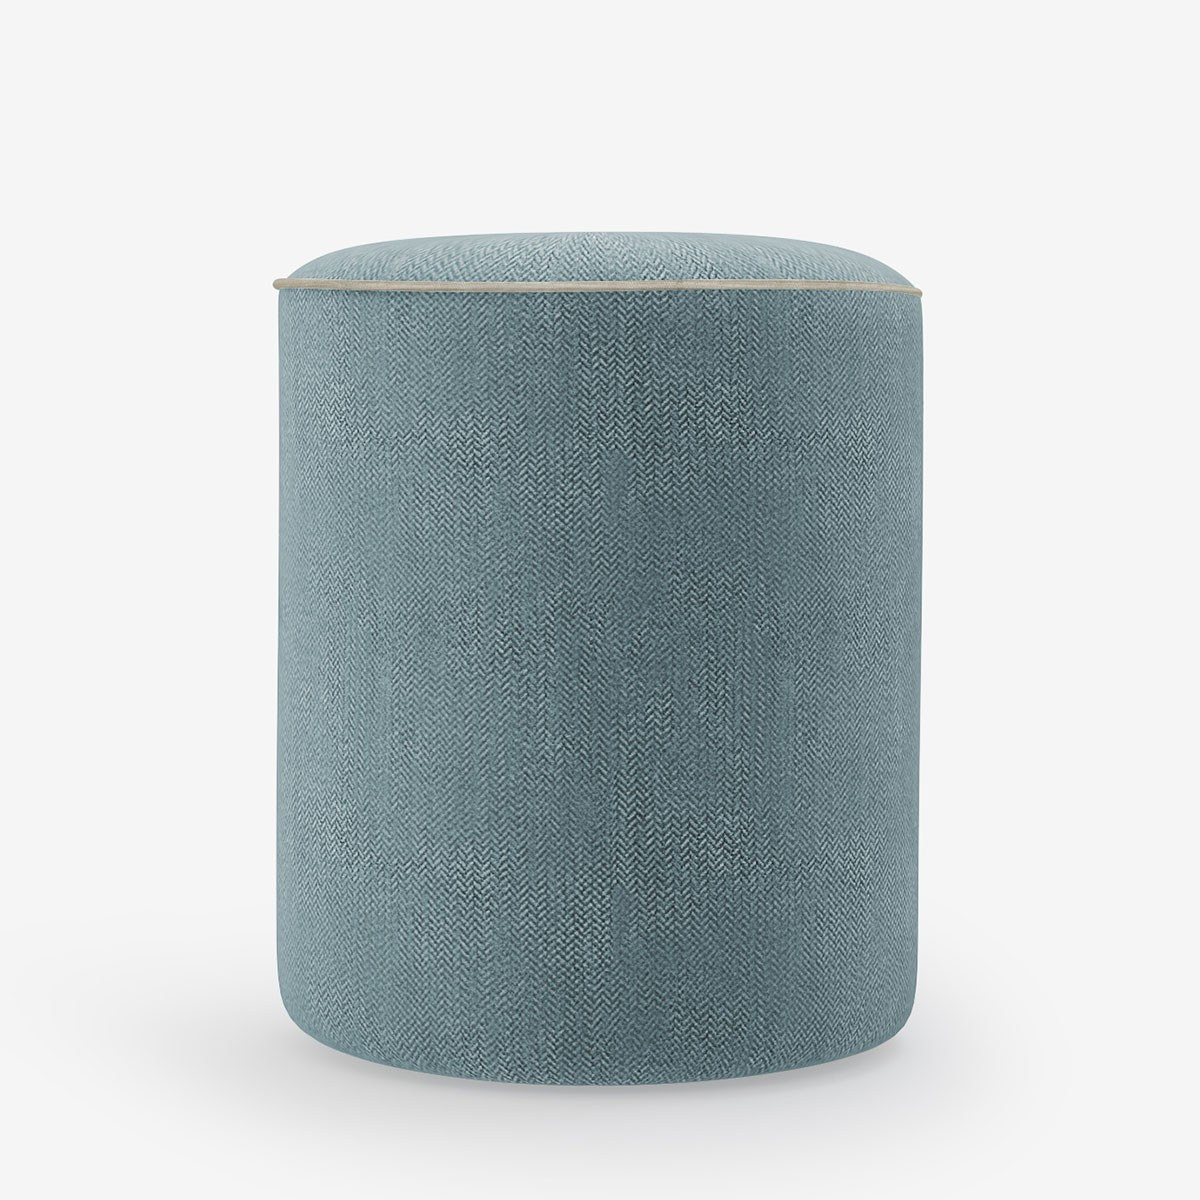 Piped To Perch Stool